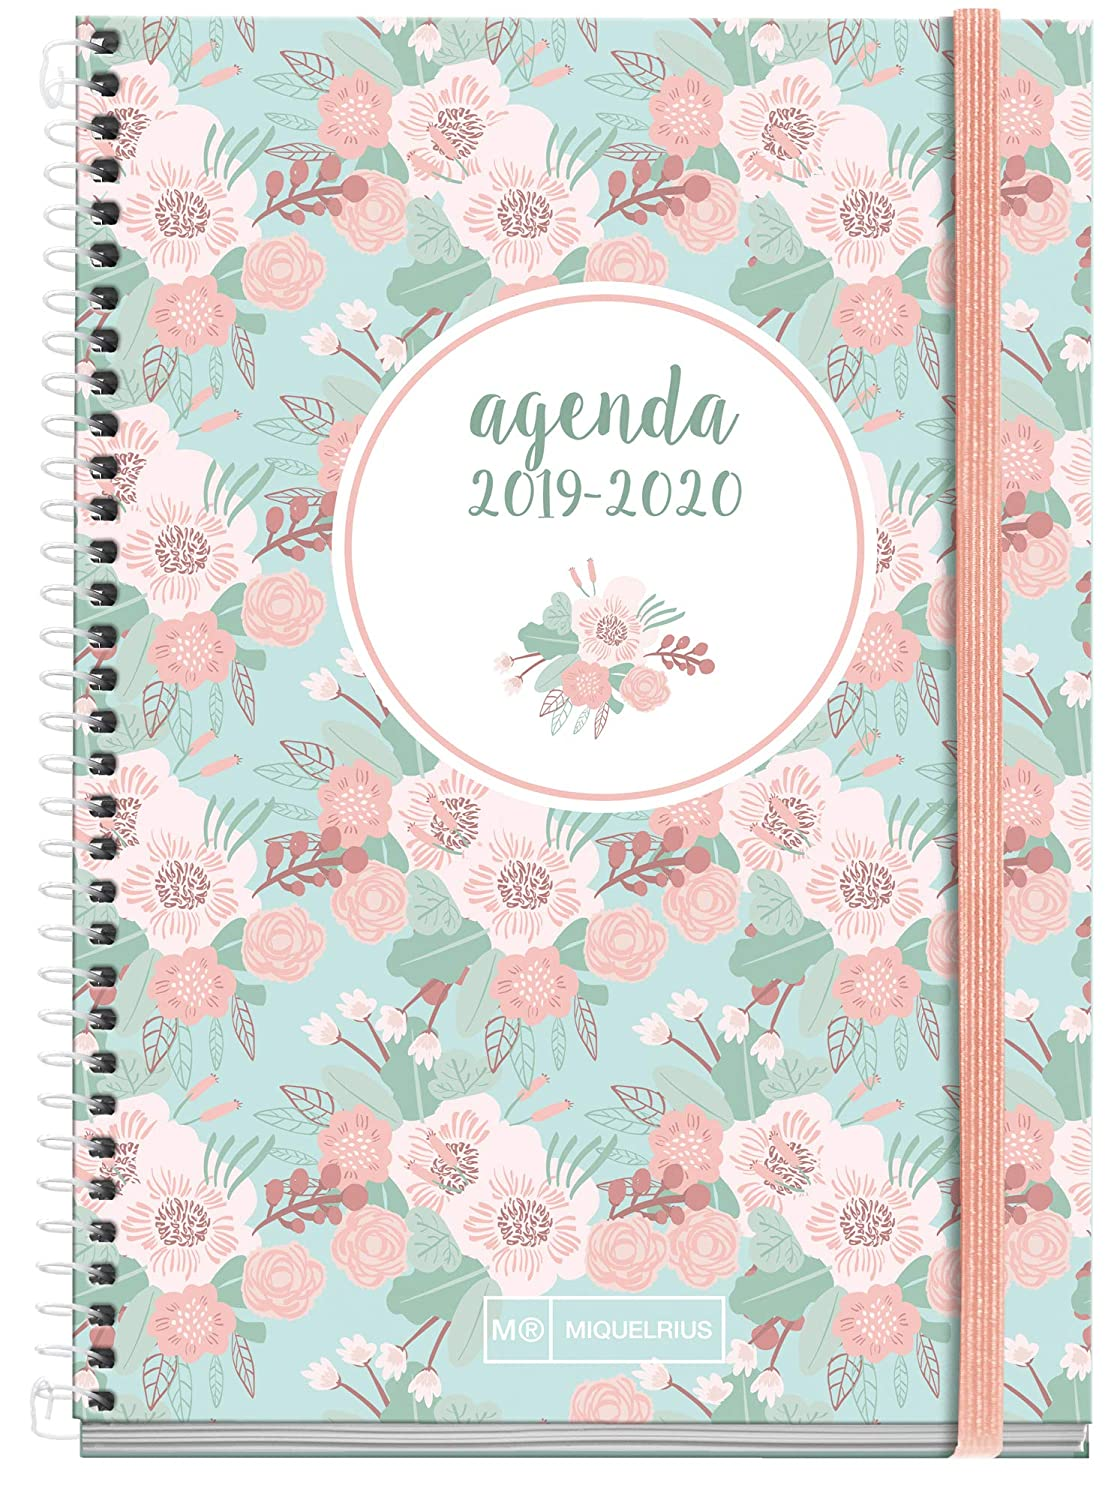 Amazon.com : Miquelrius School Agenda with Spiral 19/20 Día ...